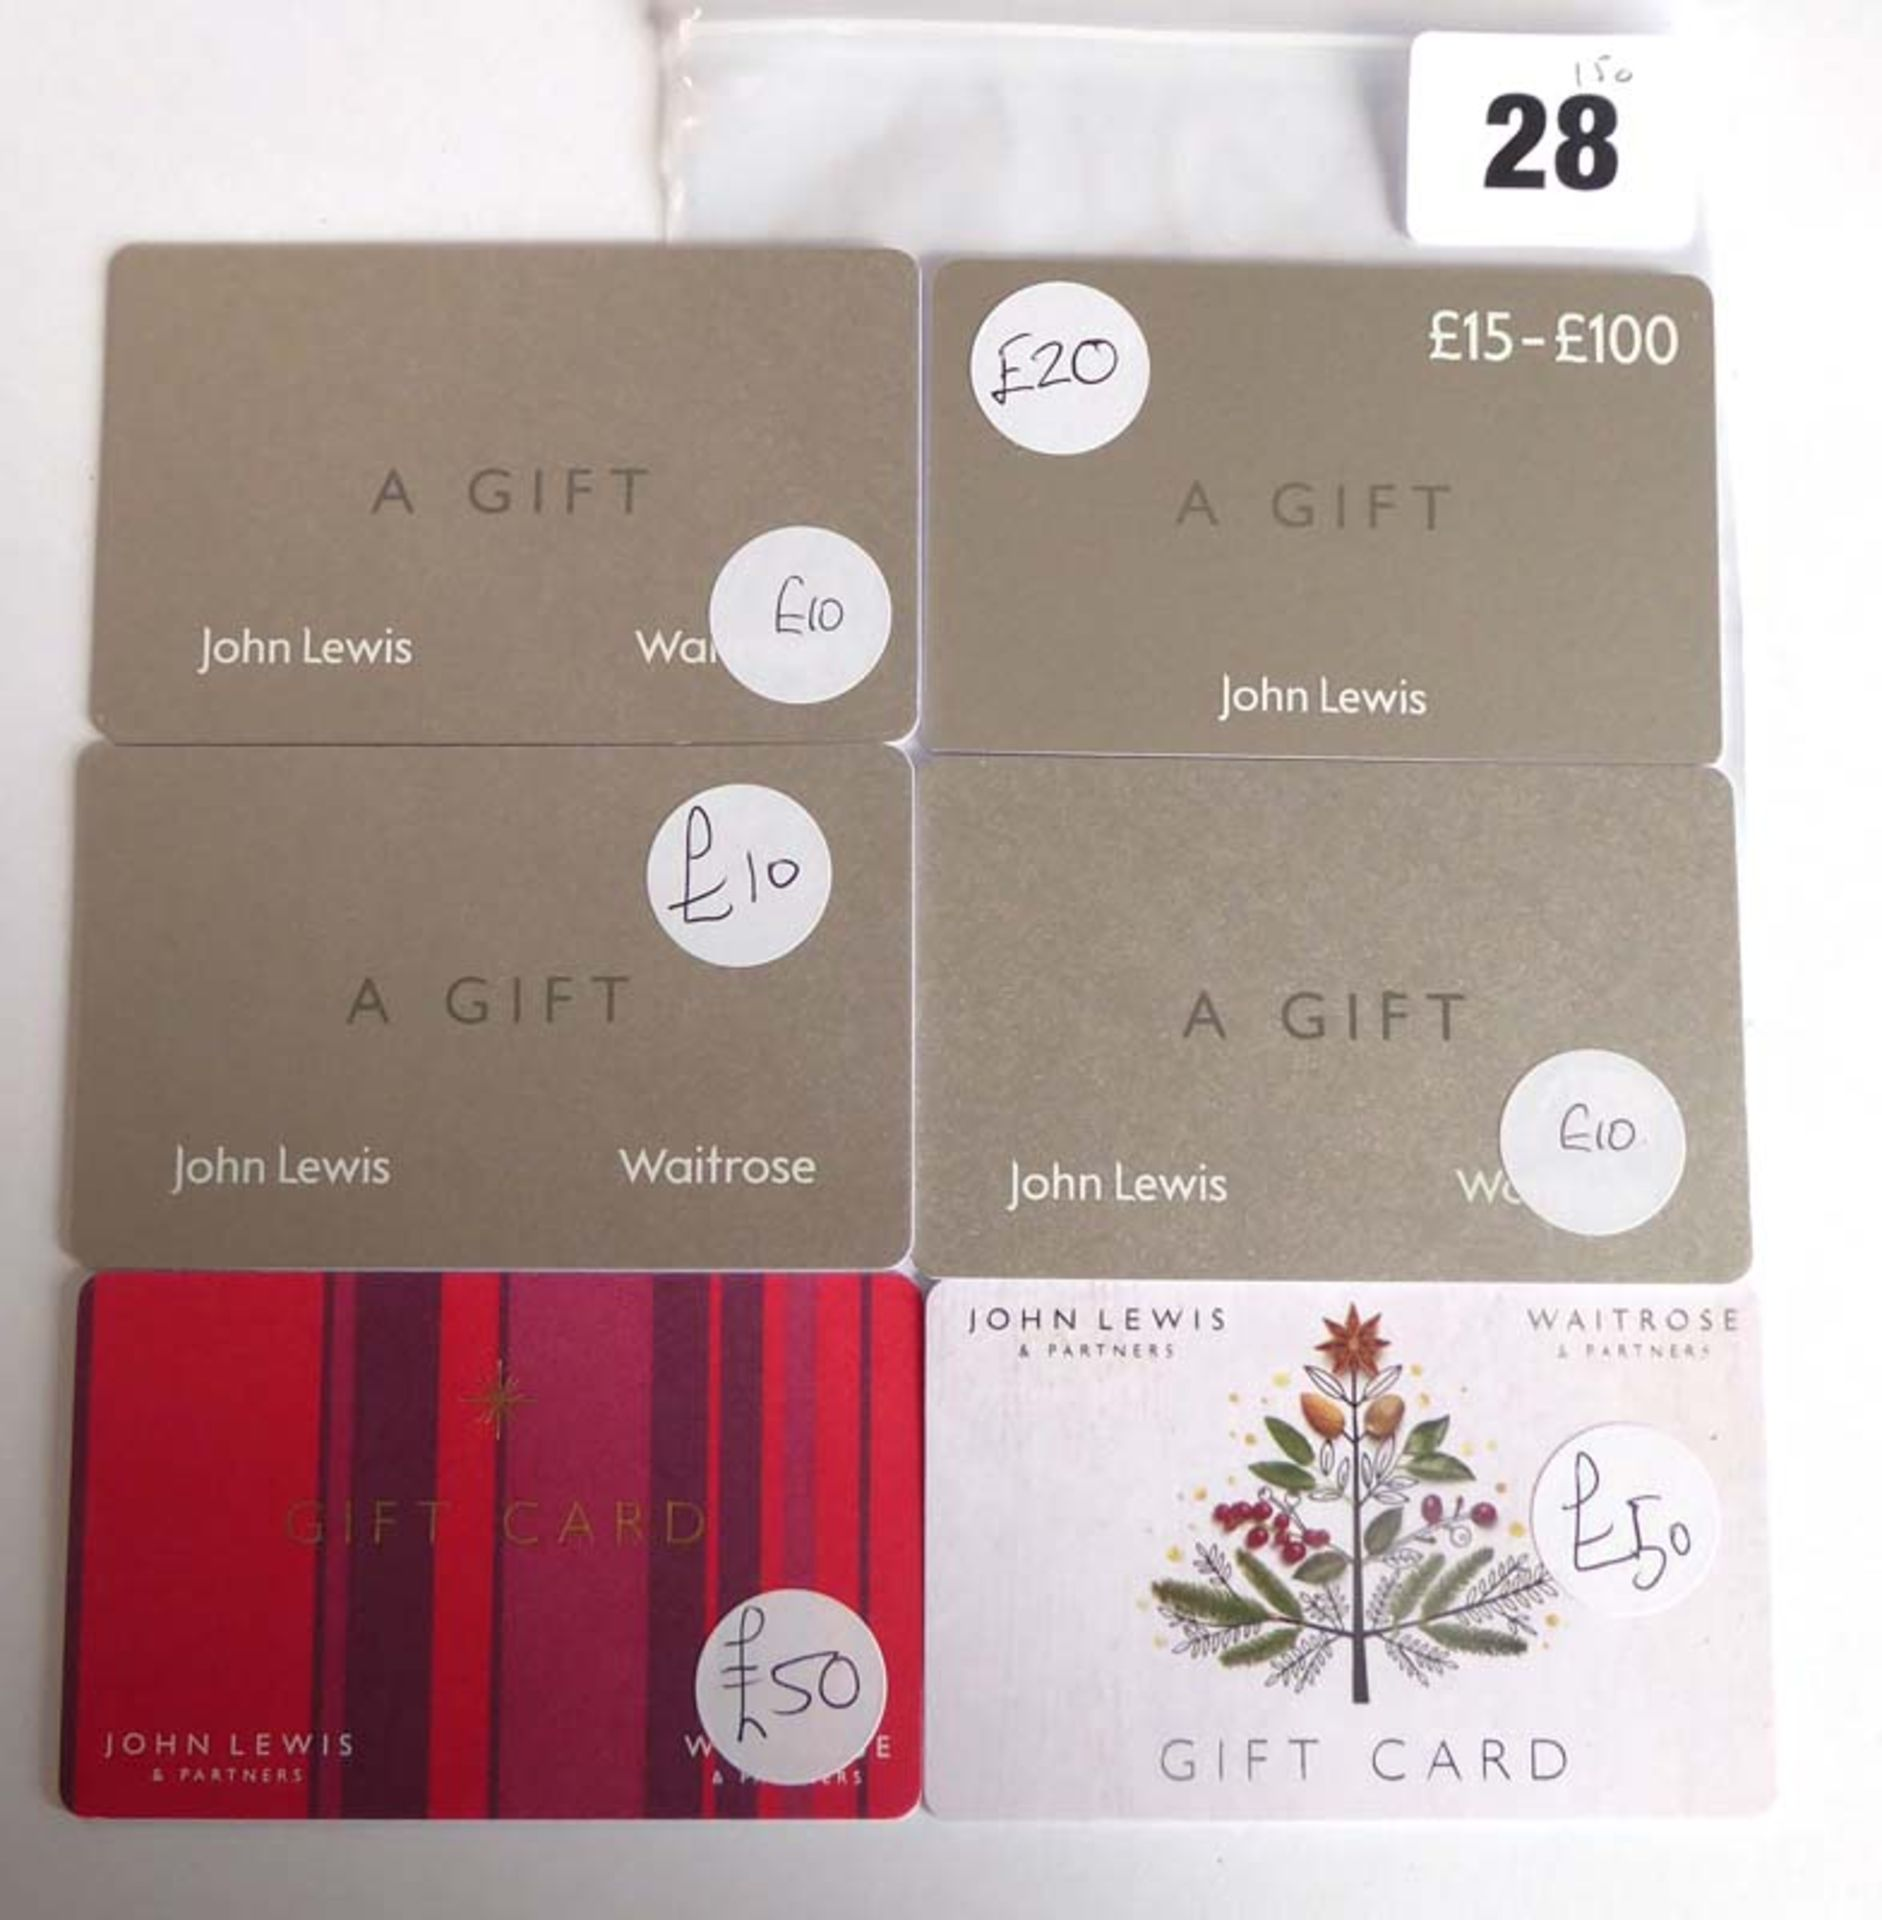 Lot 28 - John Lewis (x6) - Total face value £150